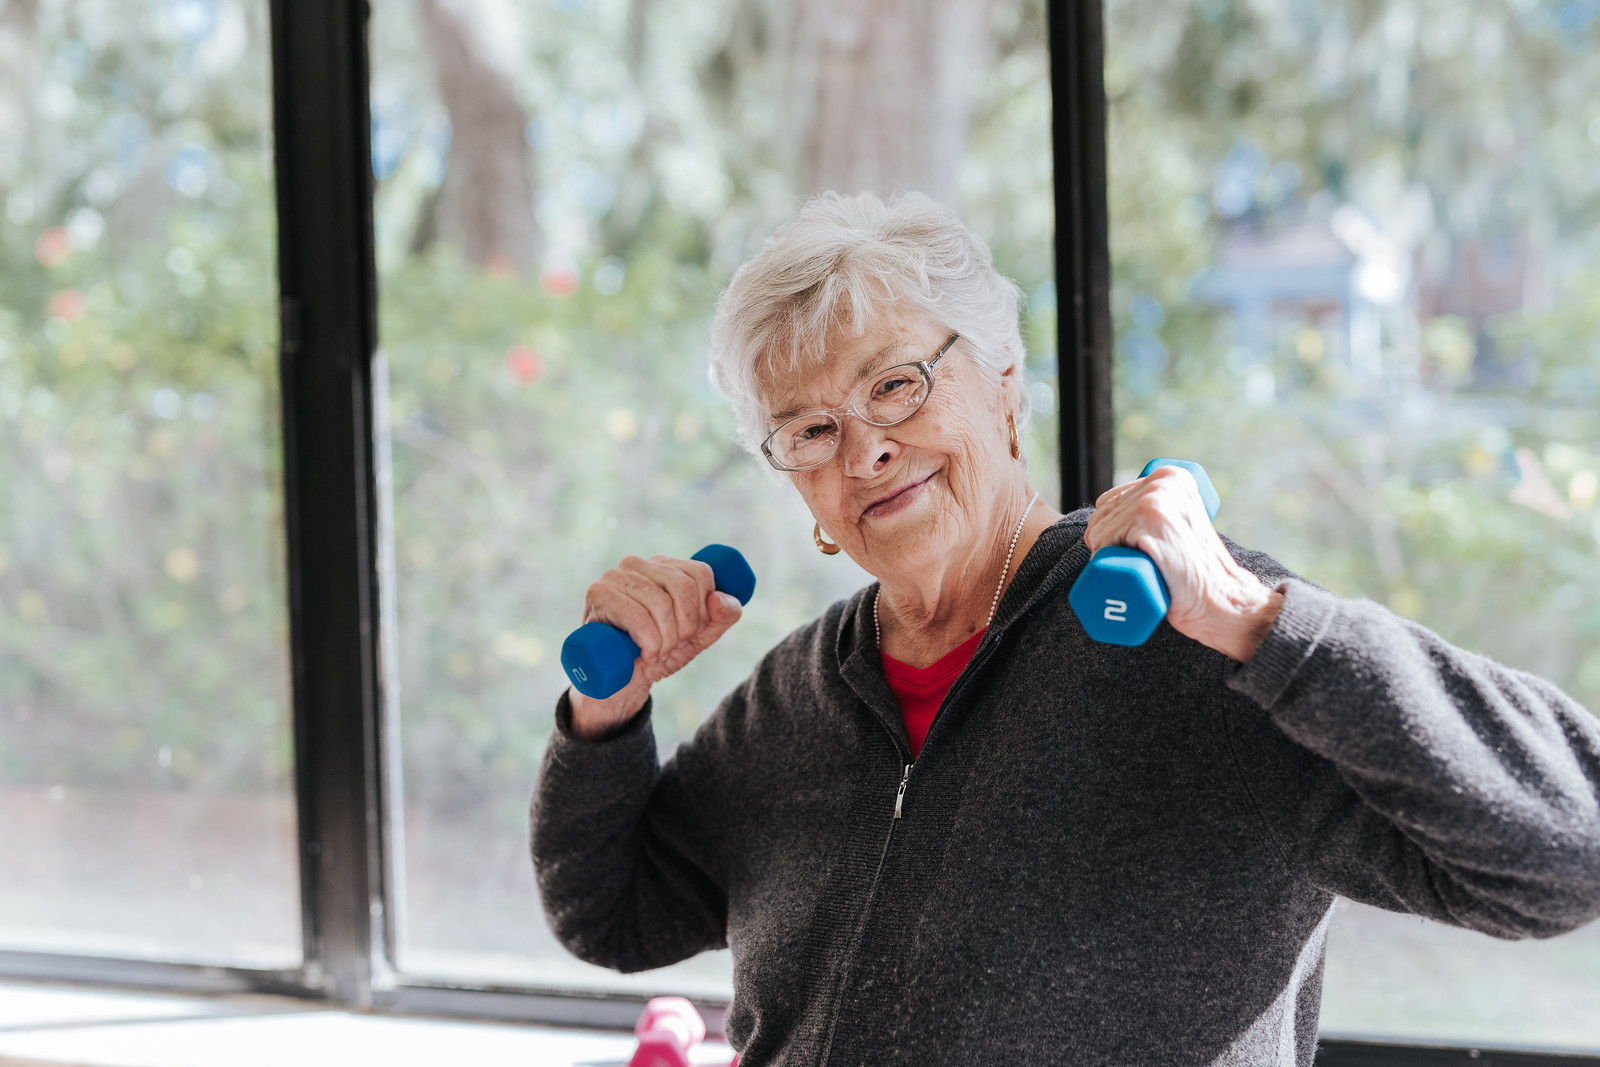 Easy Activities For Seniors To Stay Active